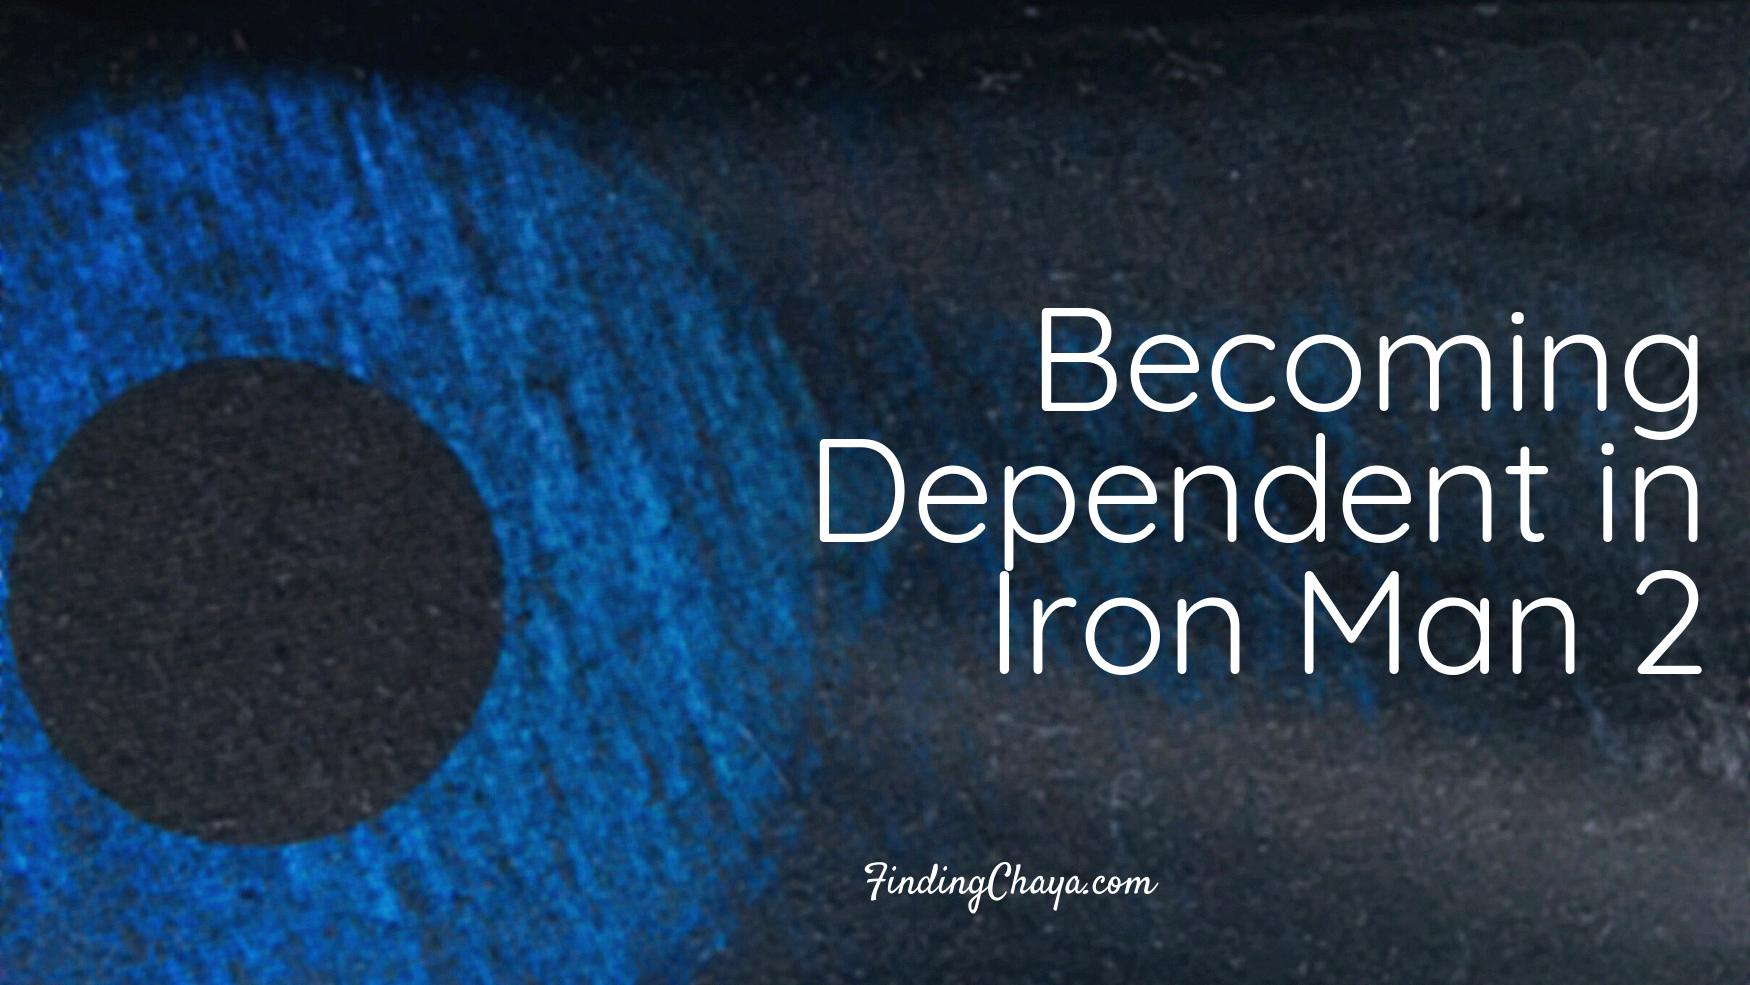 The Marvel Lockdown || Becoming Dependent in Iron Man 2